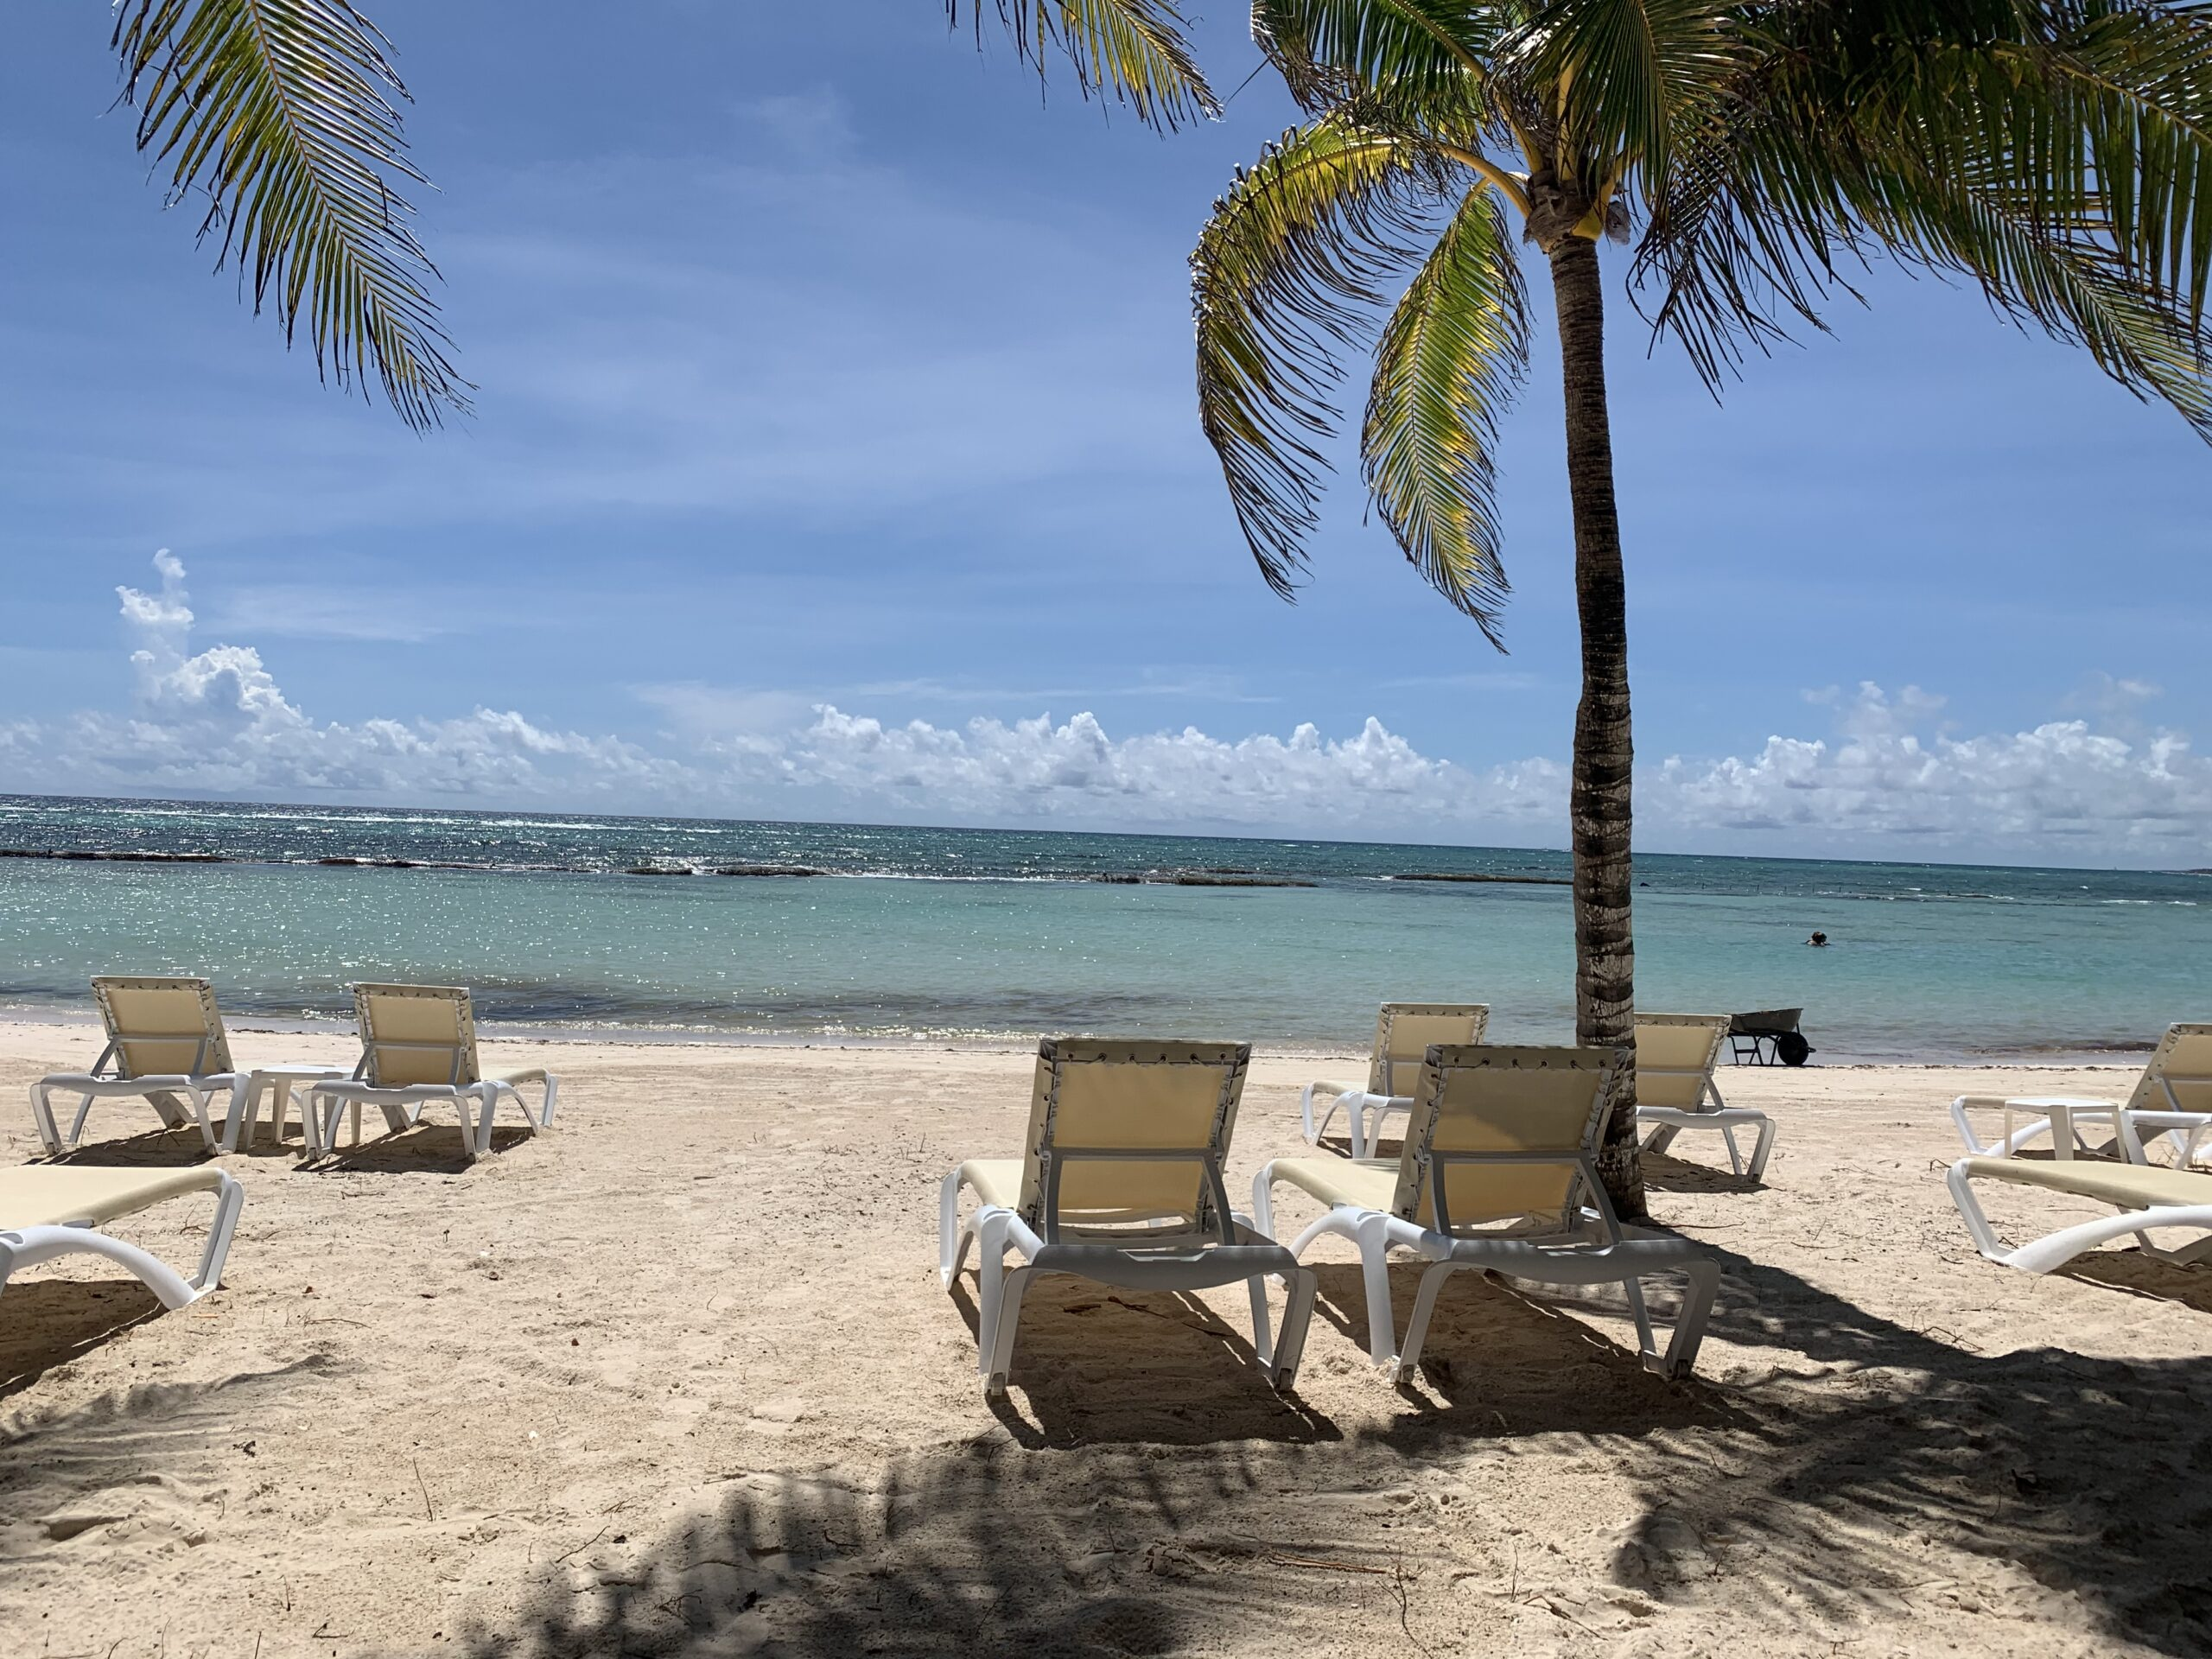 beach loungers and palm trees on the white sand beach in Mexico